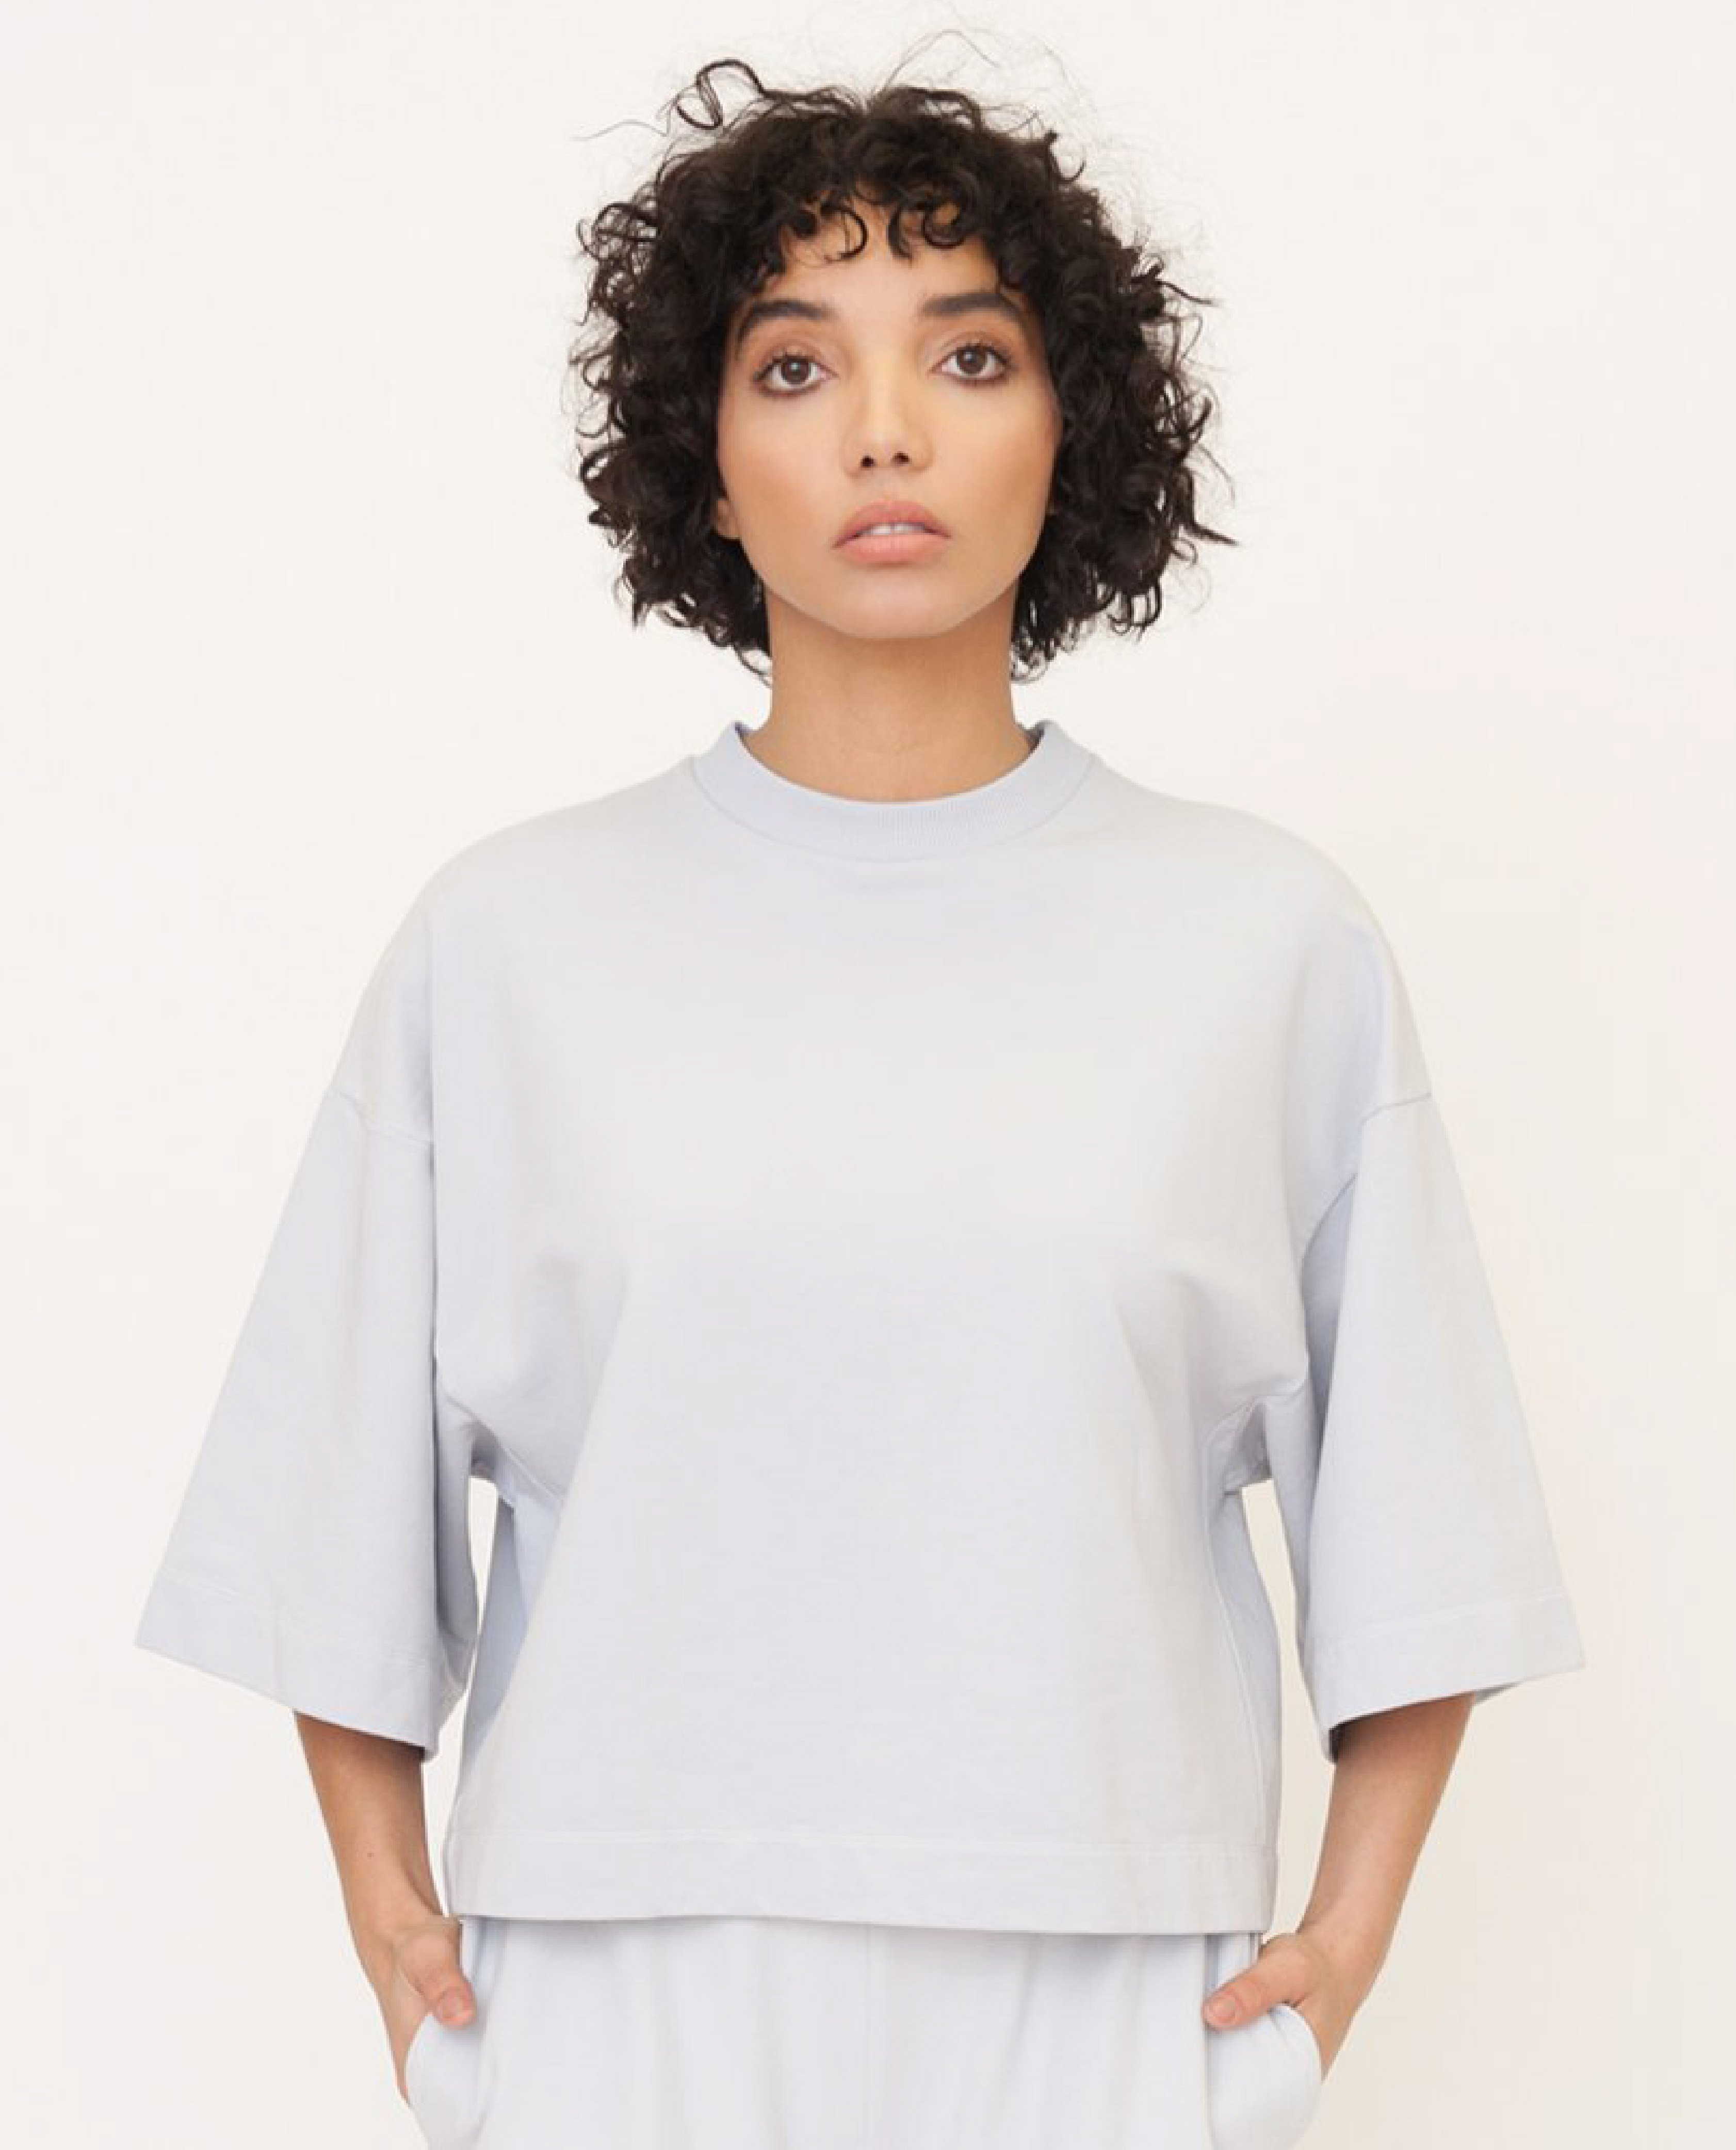 RILEY Organic Cotton Top In Grey from Beaumont Organic